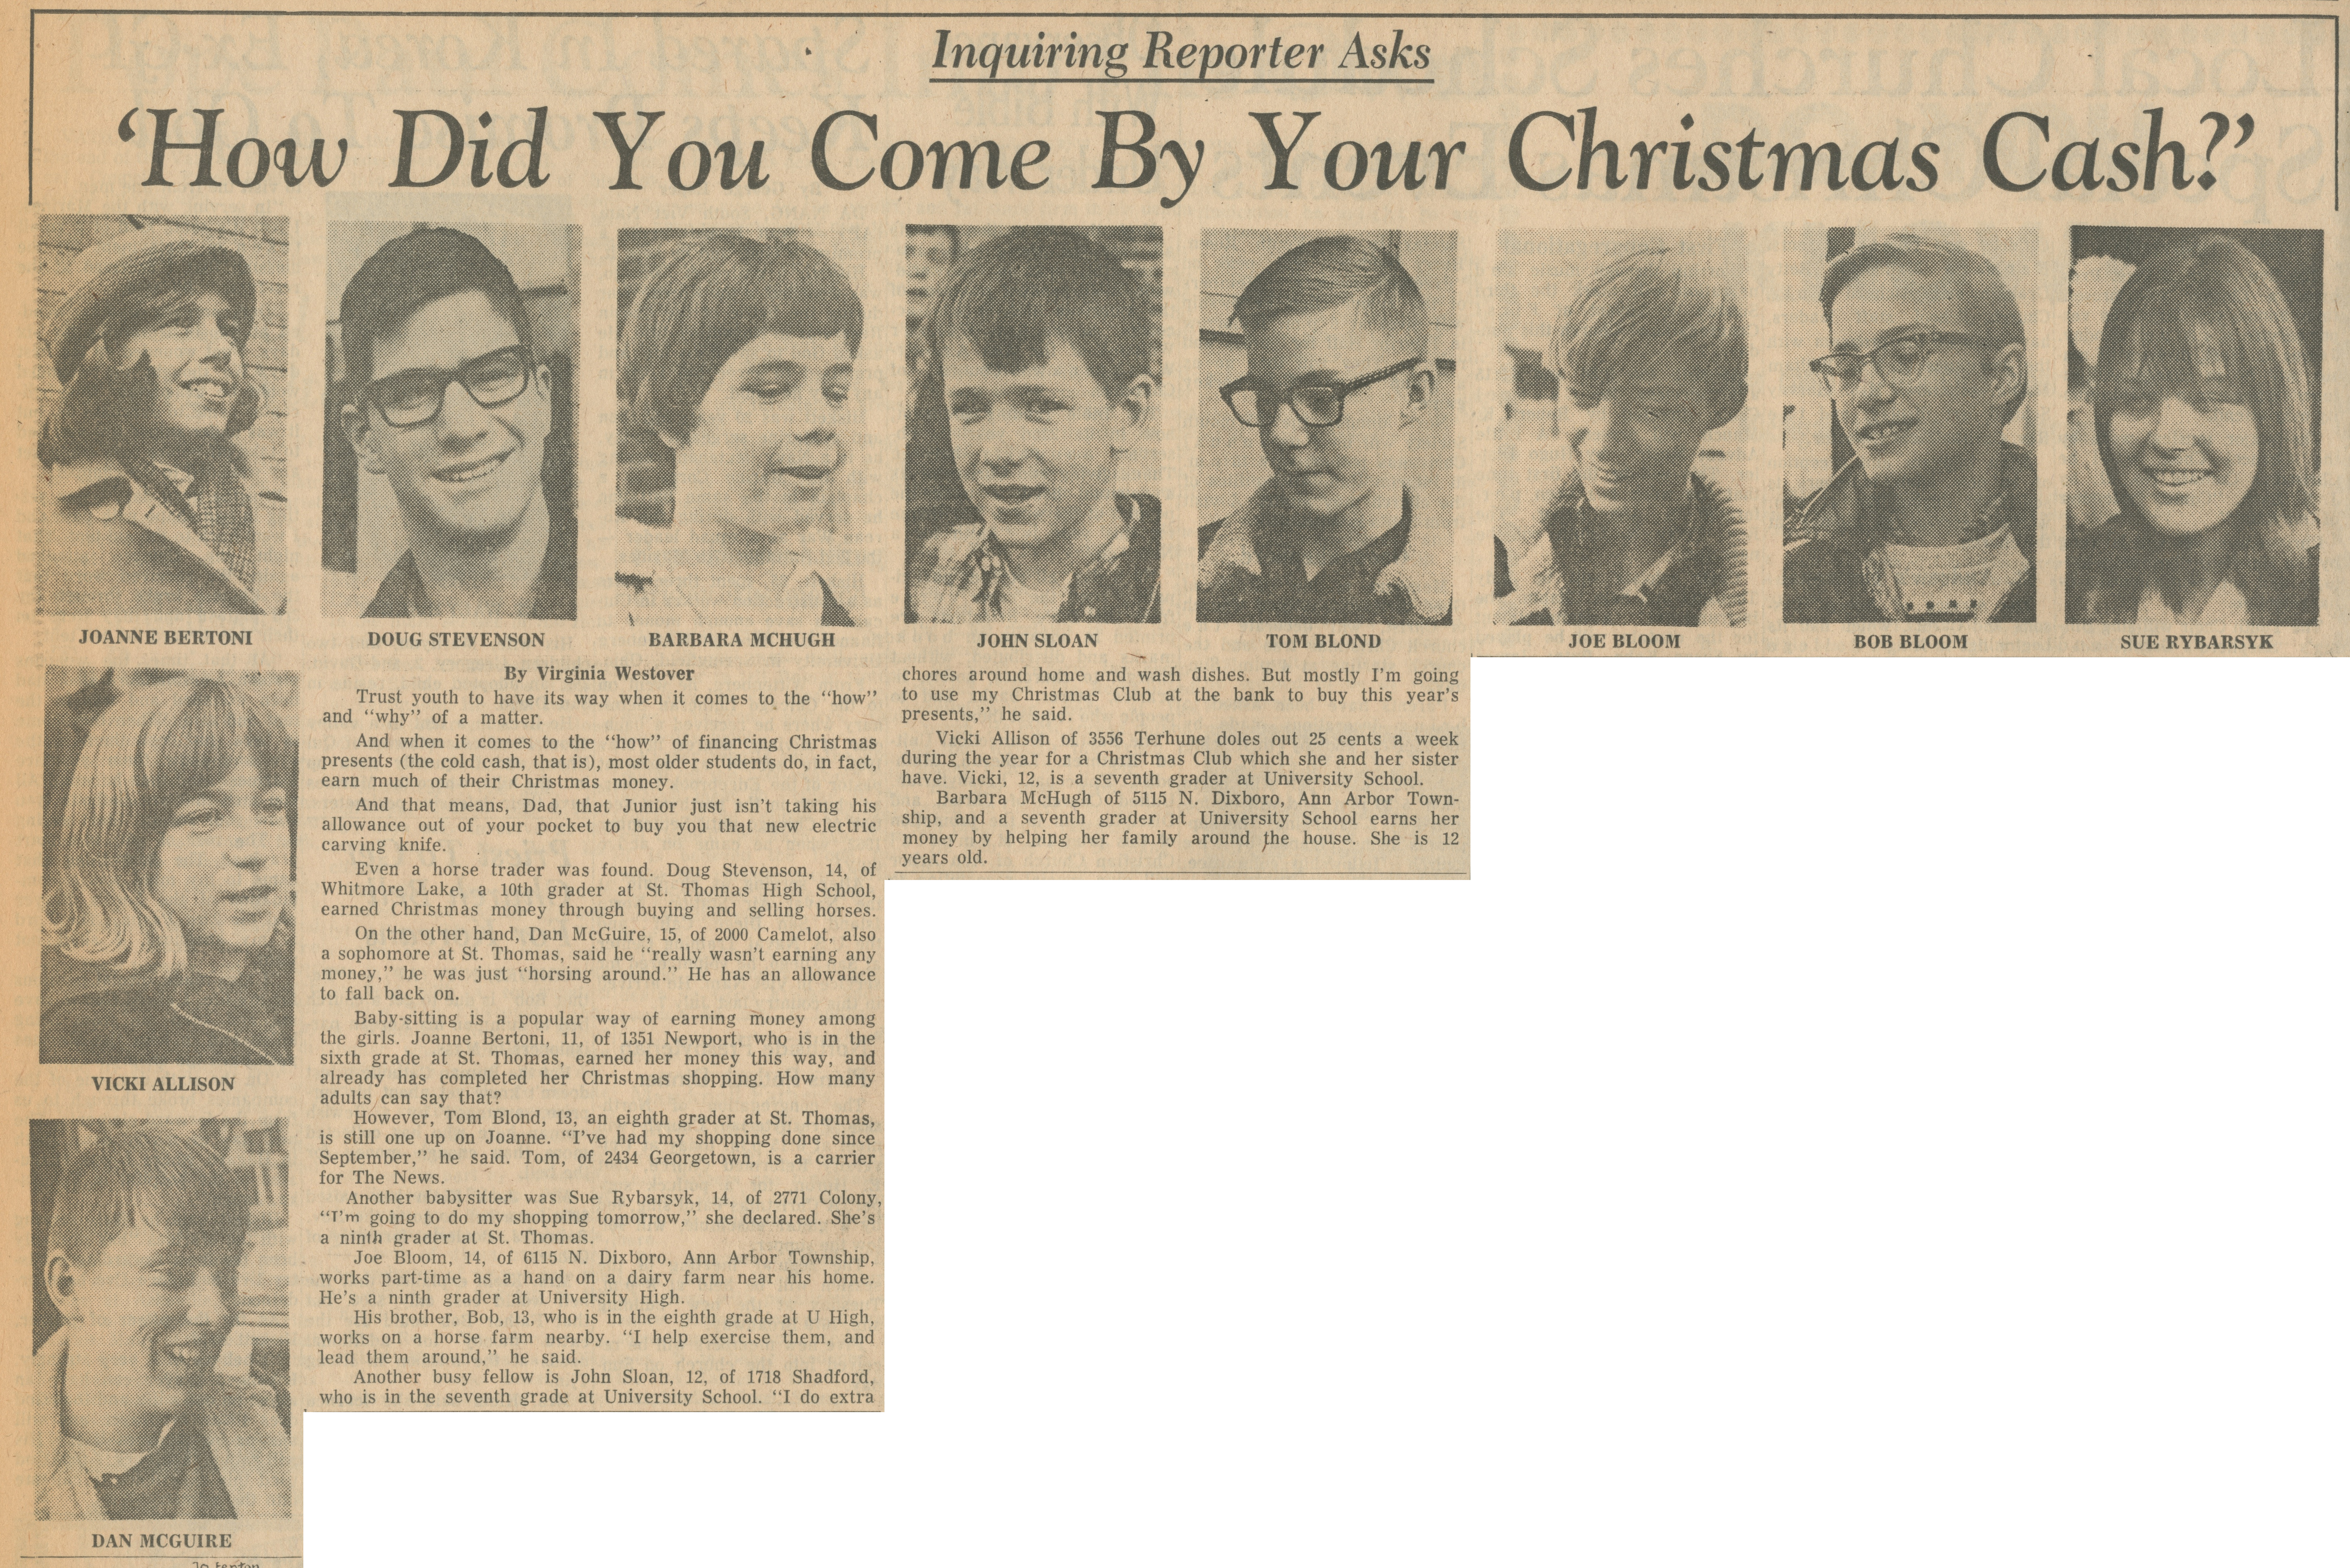 Inquiring Reporter Asks - How Did You Come By Your Christmas Cash? image